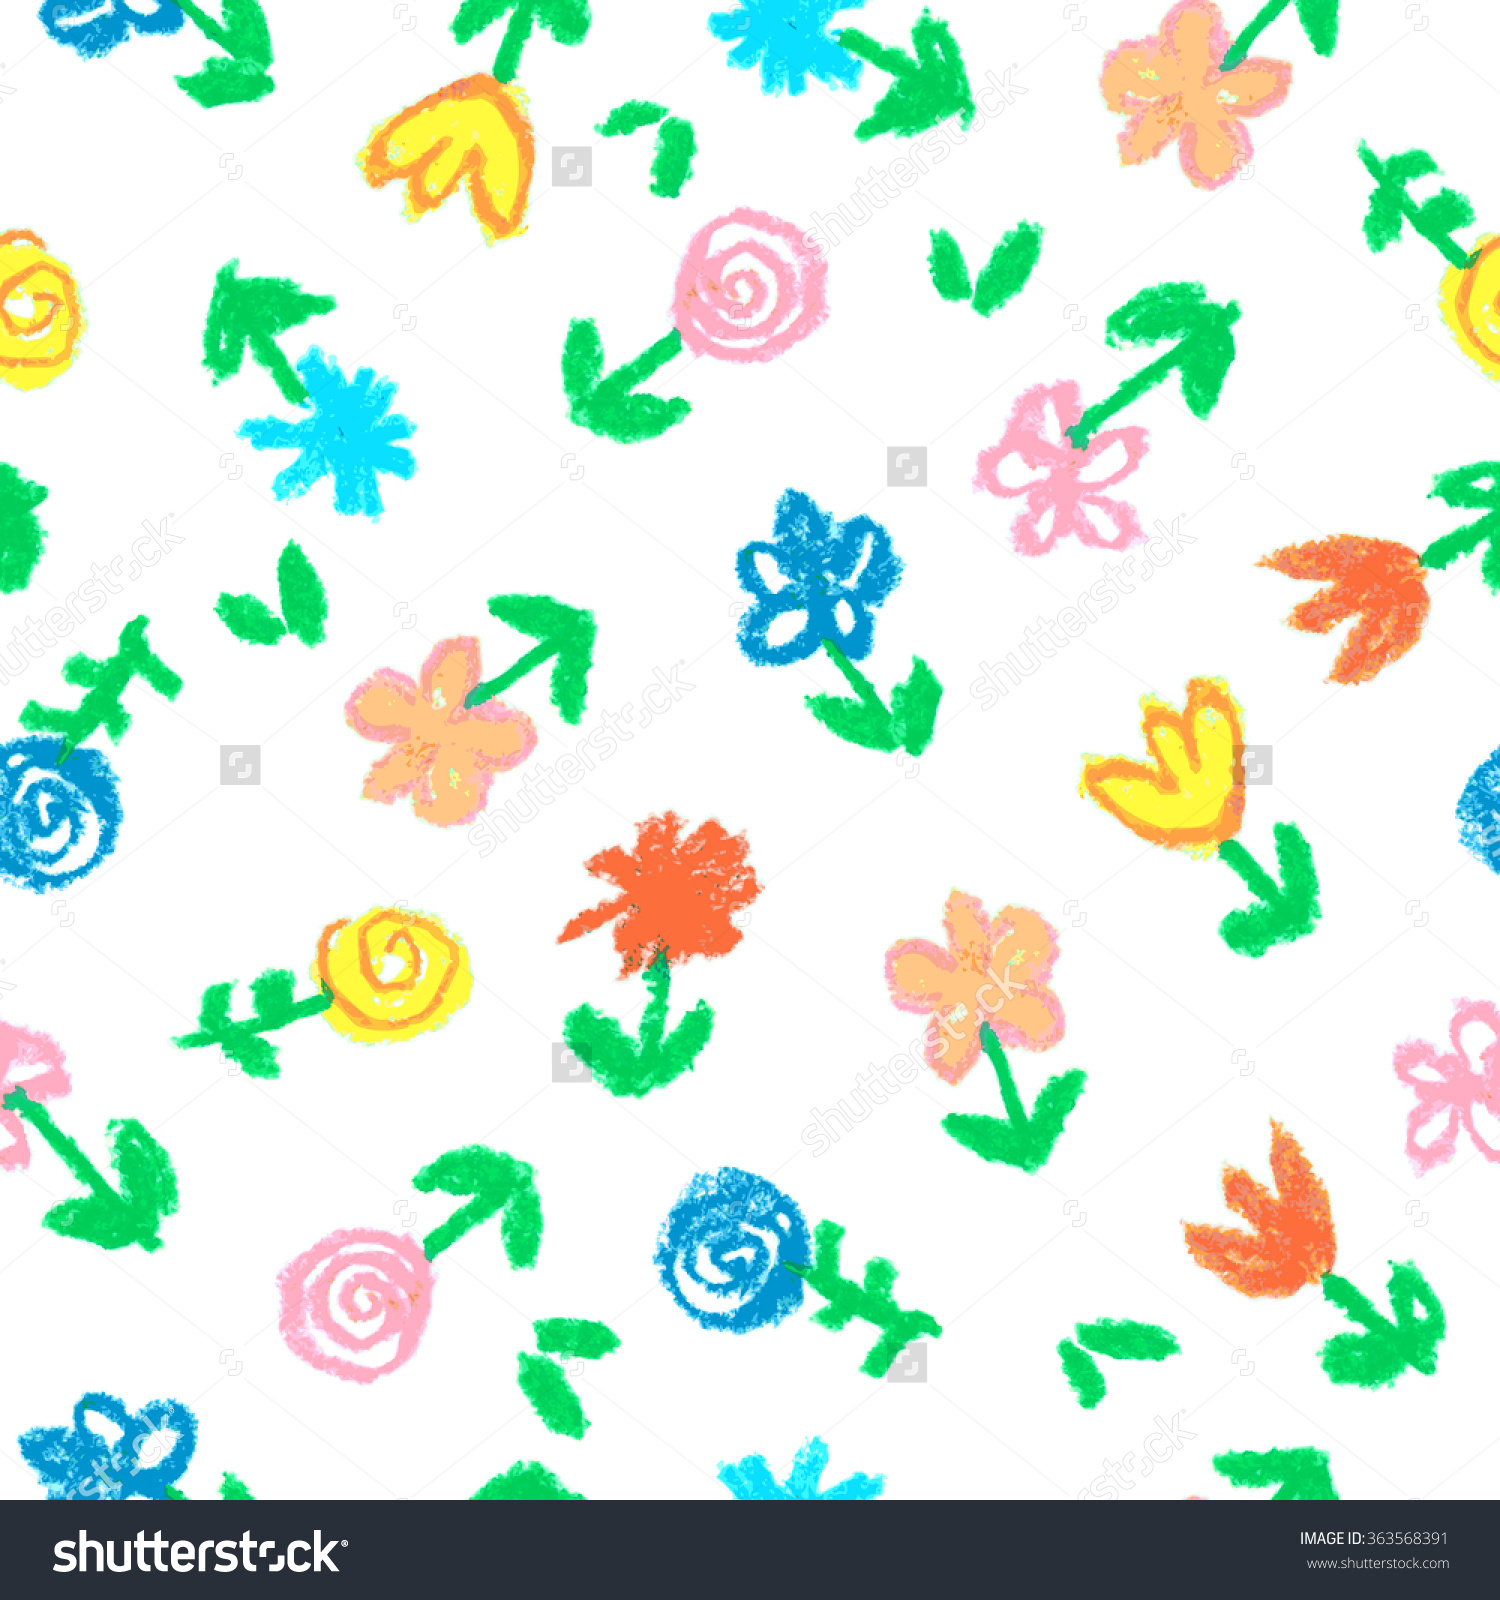 Crayon Childs Drawing Flowers On White Stock Illustration.